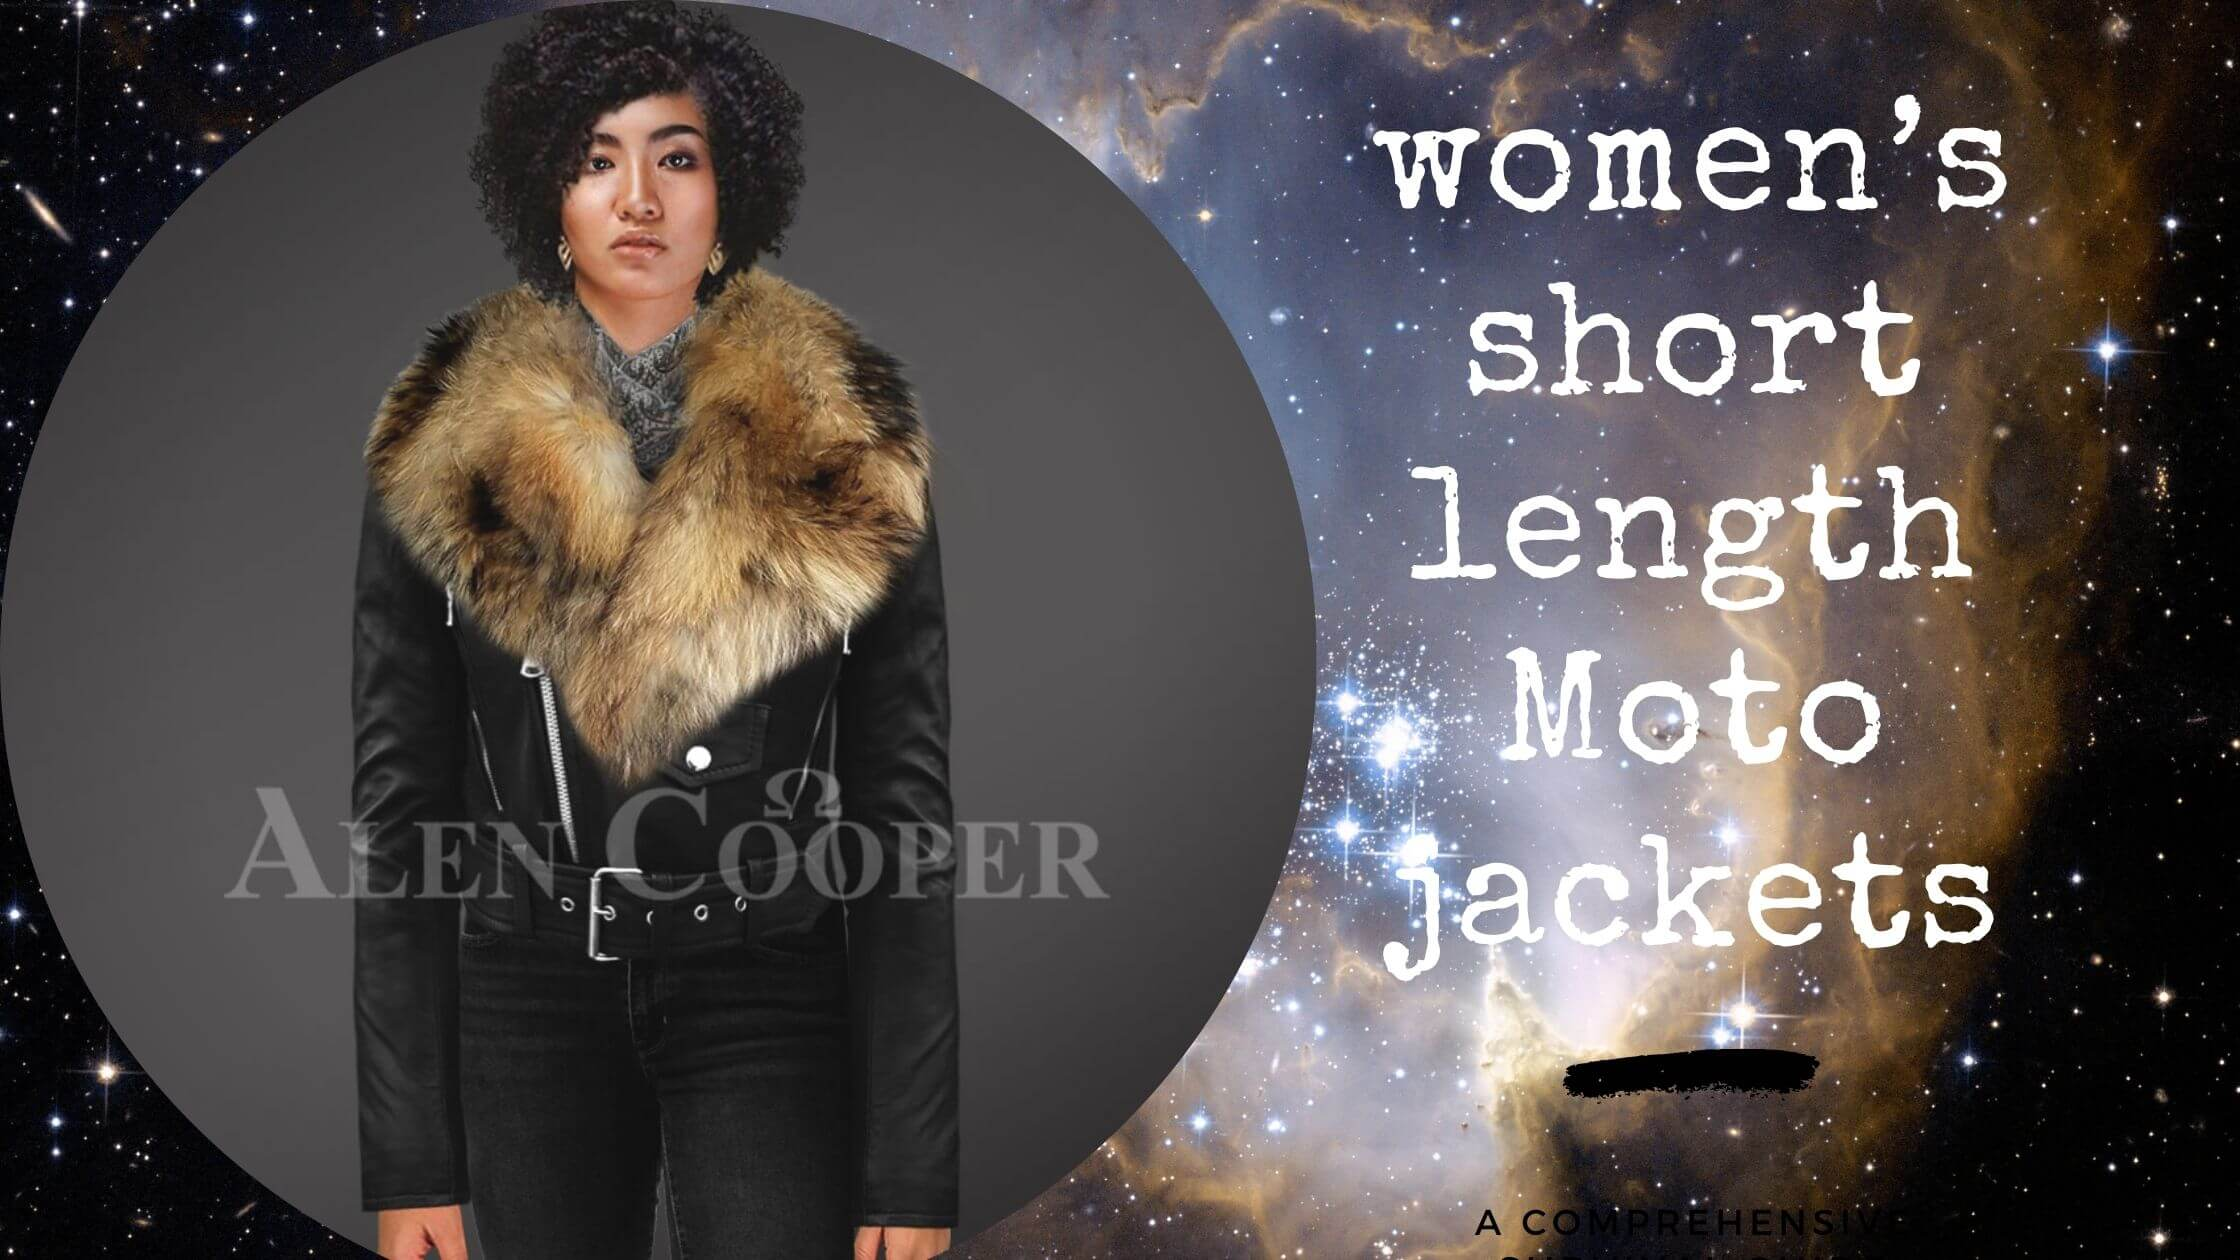 EVOLUTION OF LEATHER JACKETS: EARLY VERSION TO WOMEN'S SHORT LENGTH MOTO JACKETS